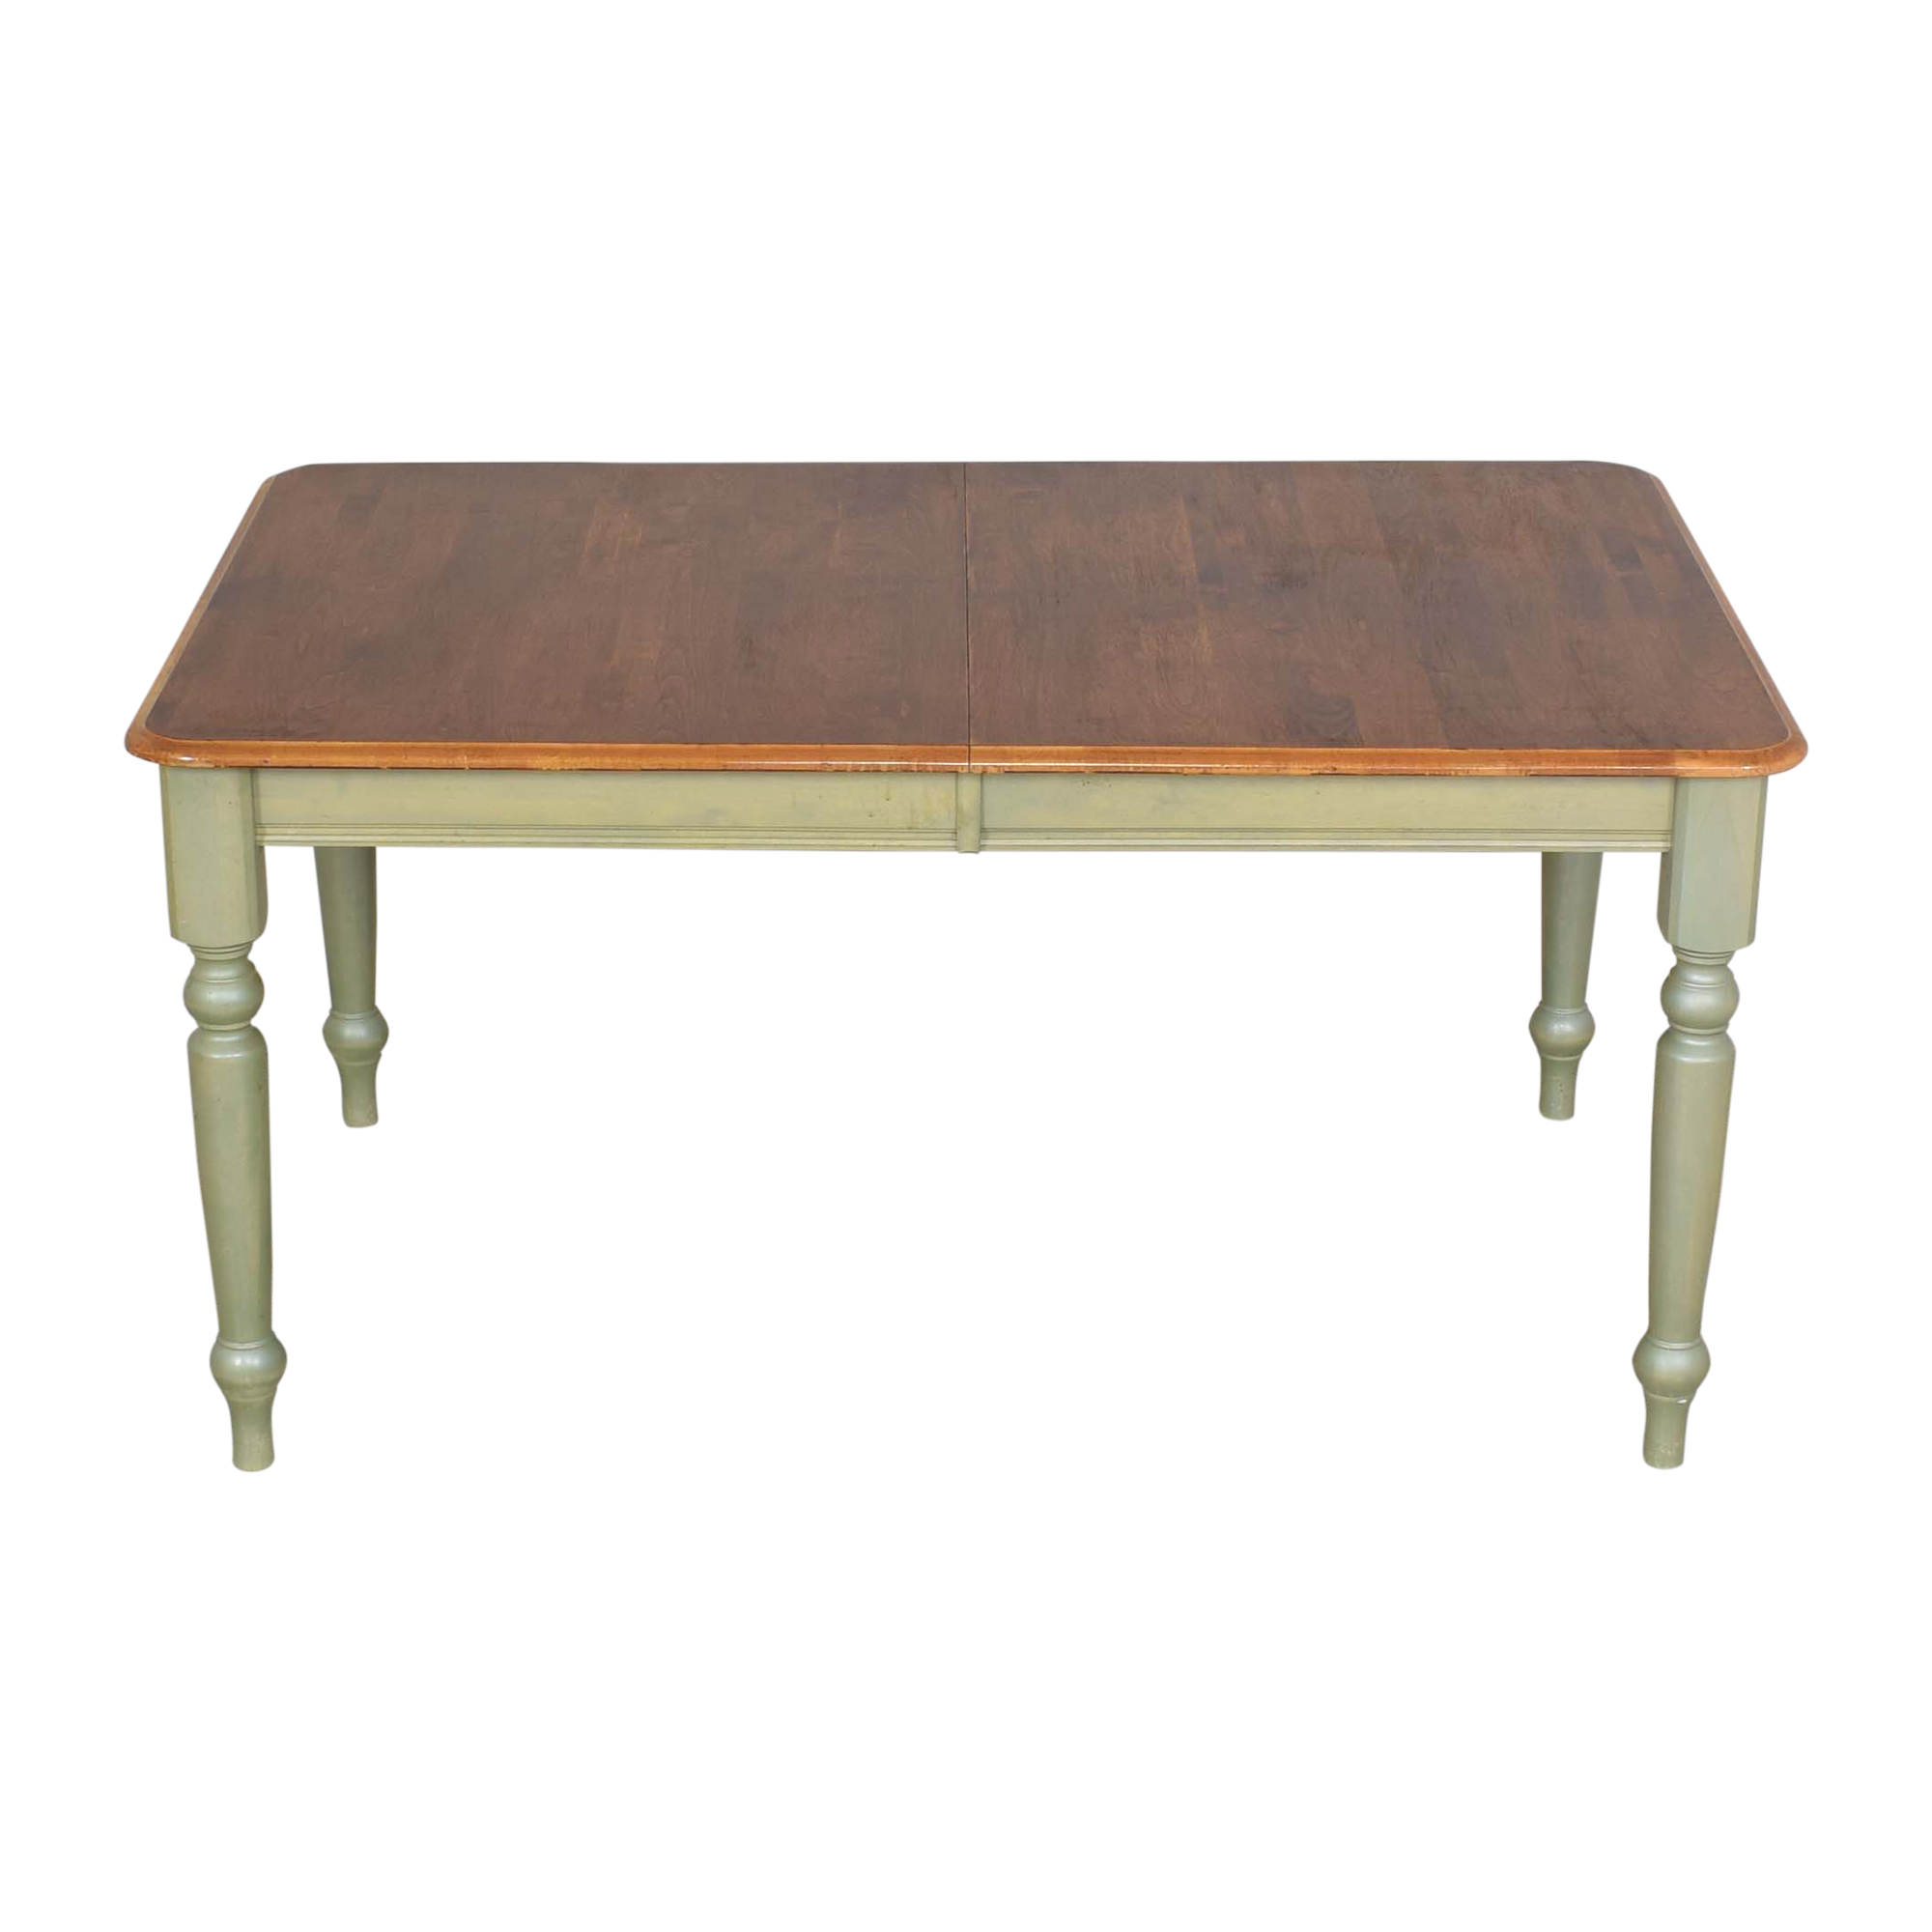 Canadel Canadel Farmhouse Dining Table second hand